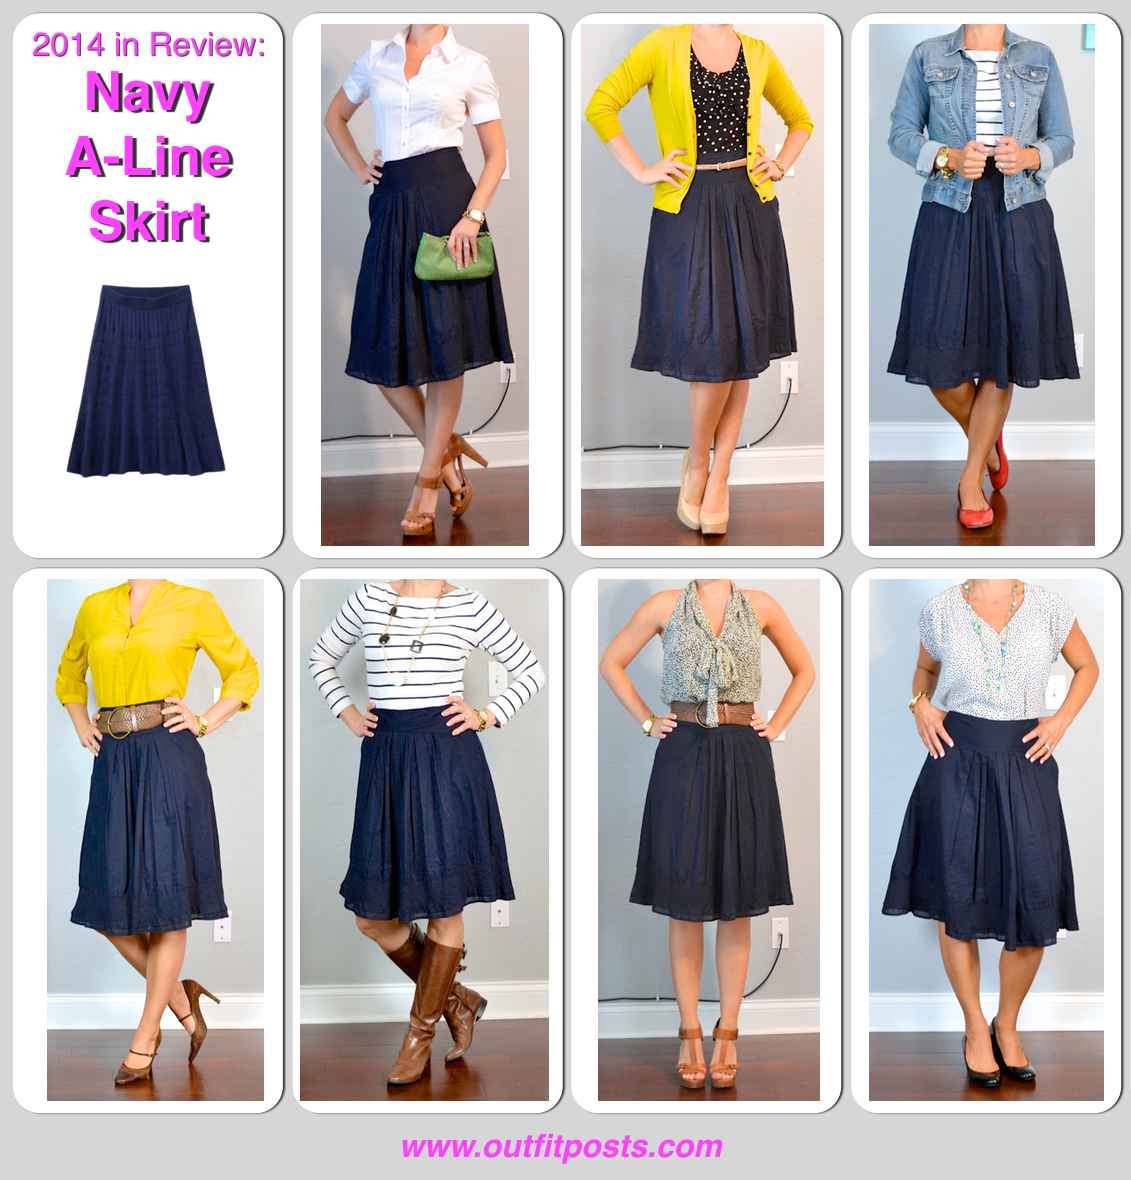 2014 in review - outfit posts: navy a-line skirt - 7 ways | Outfit ...